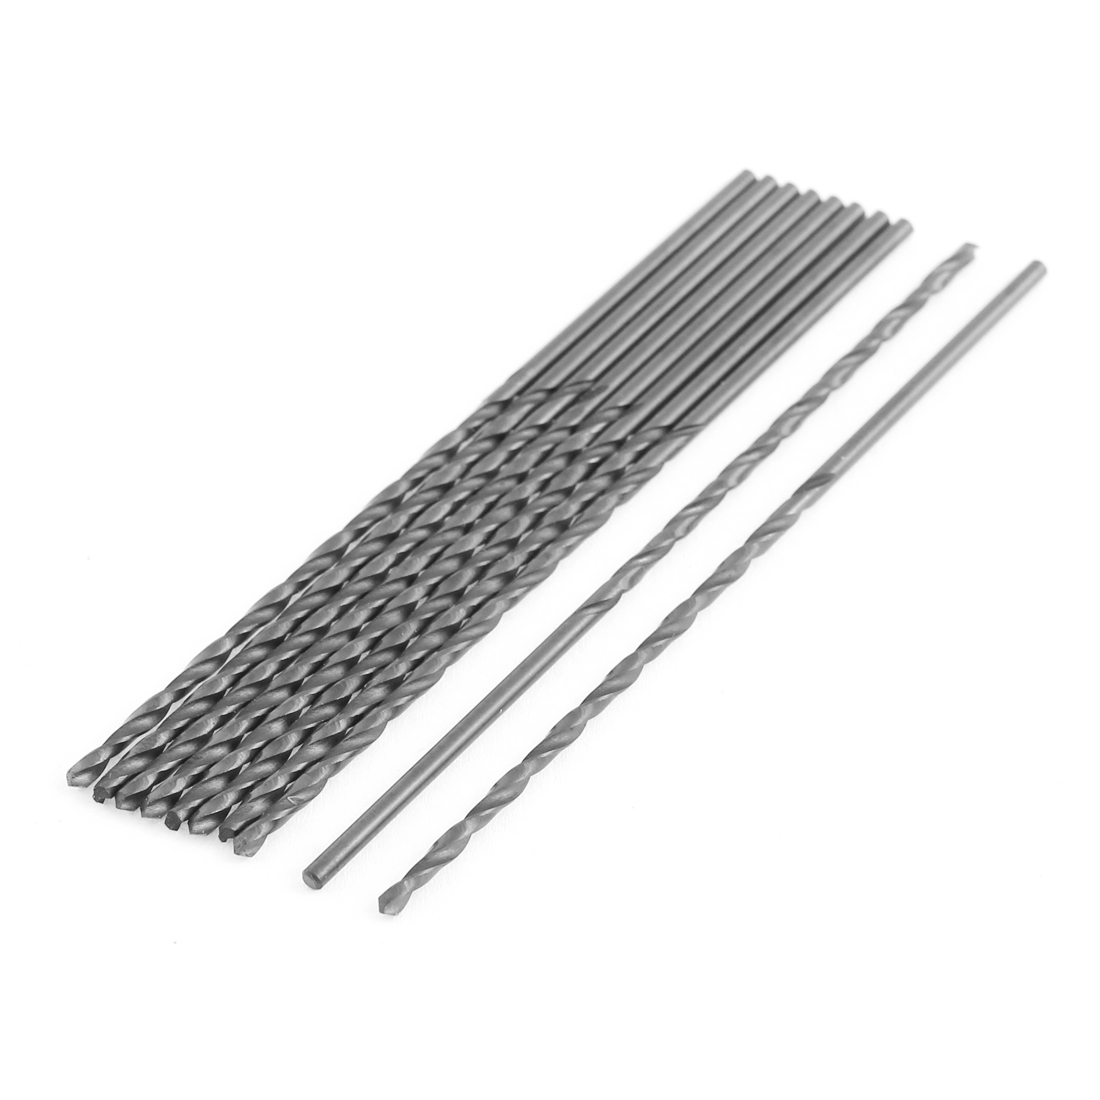 10 Pcs 2mm Cutting Dia 2mm Straight Shank HSS Electrical Twist Drilling Bit